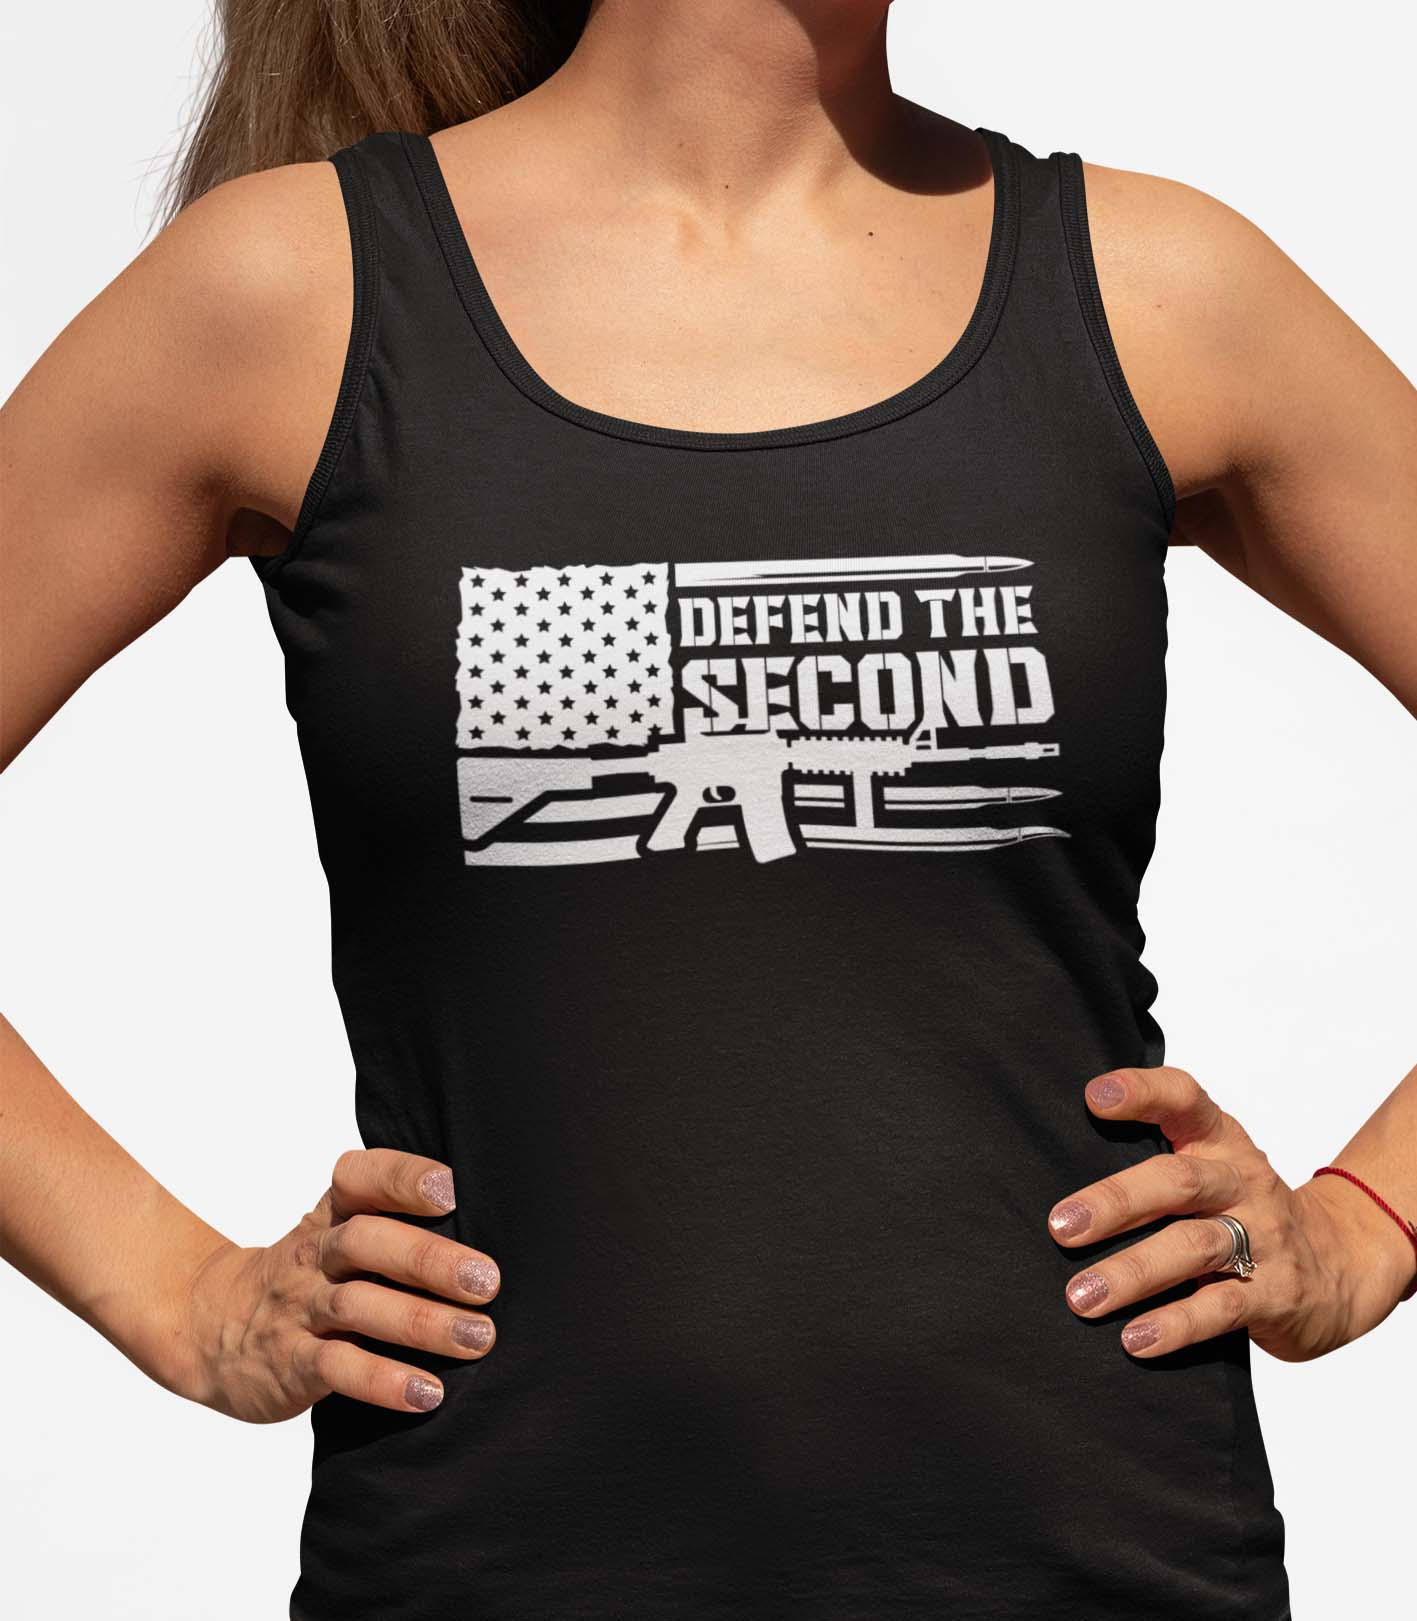 Defend the 2nd on a Womens Black Core Tank